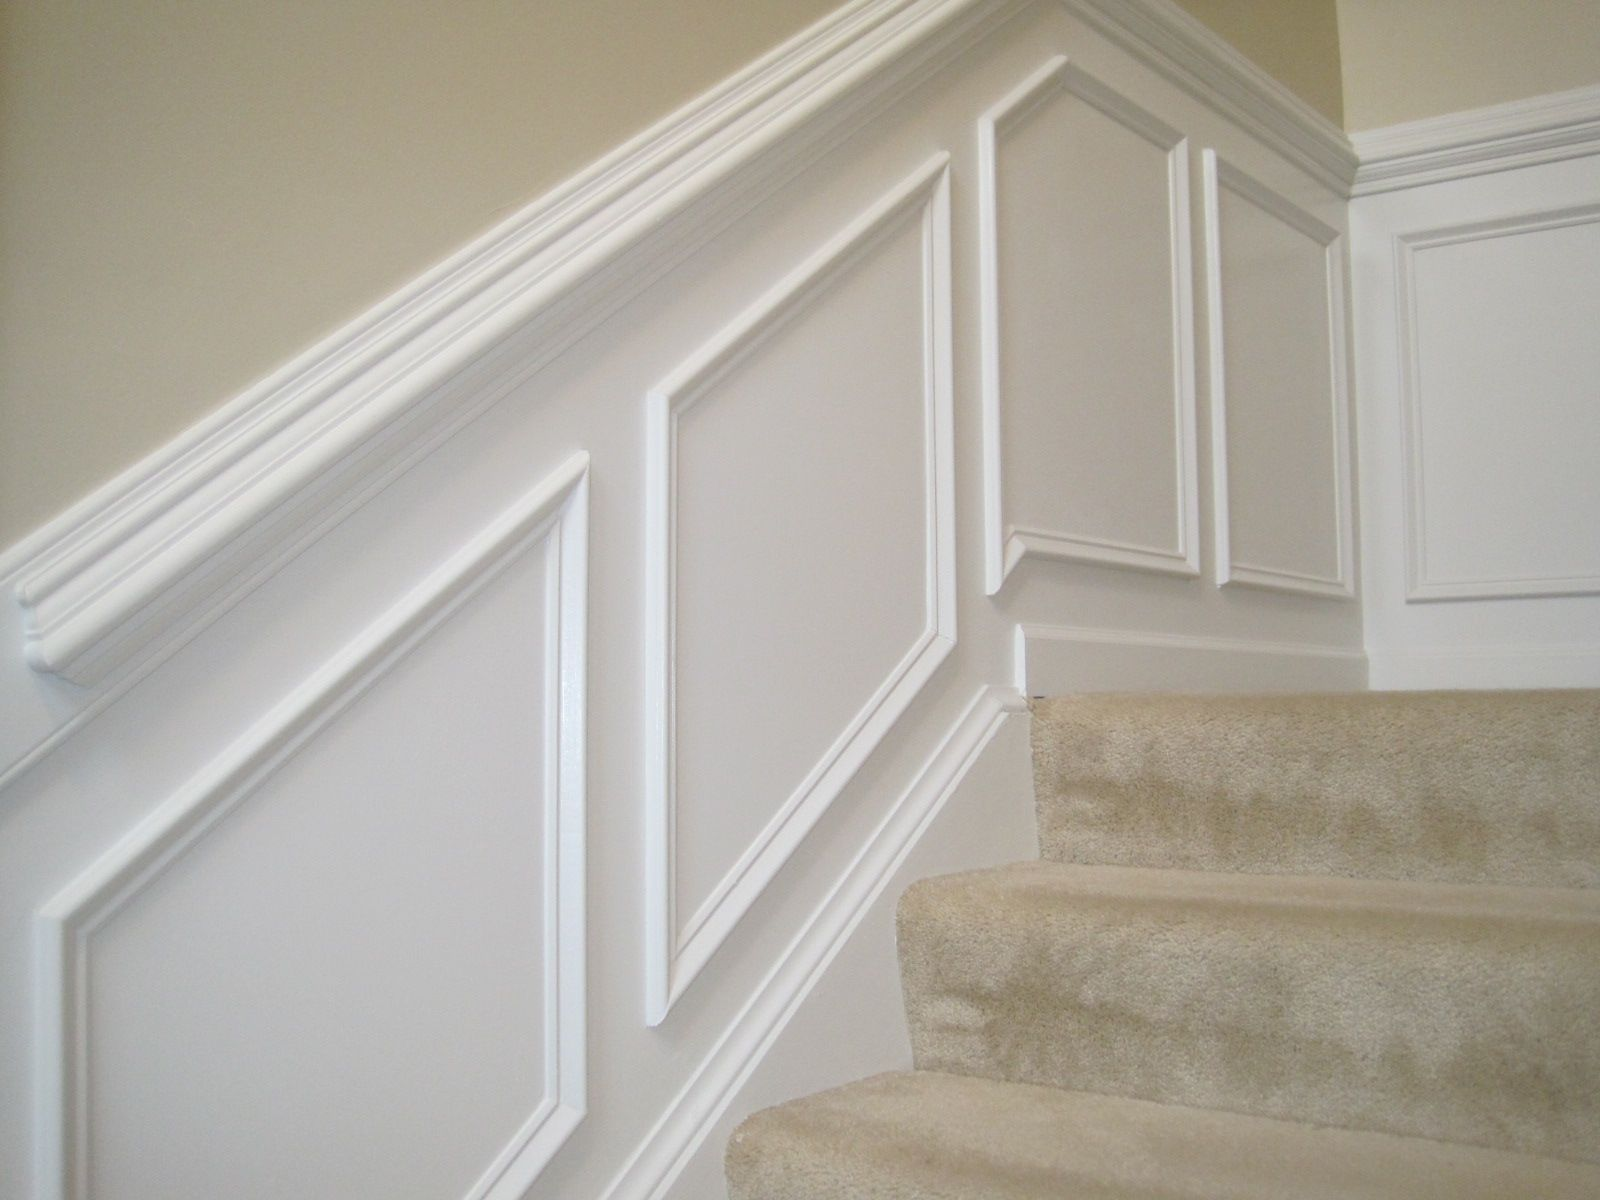 Designed To Dwell Tips For Installing Chair Rail Wainscoting Wainscoting Stairs Wainscoting Panels Moldings And Trim